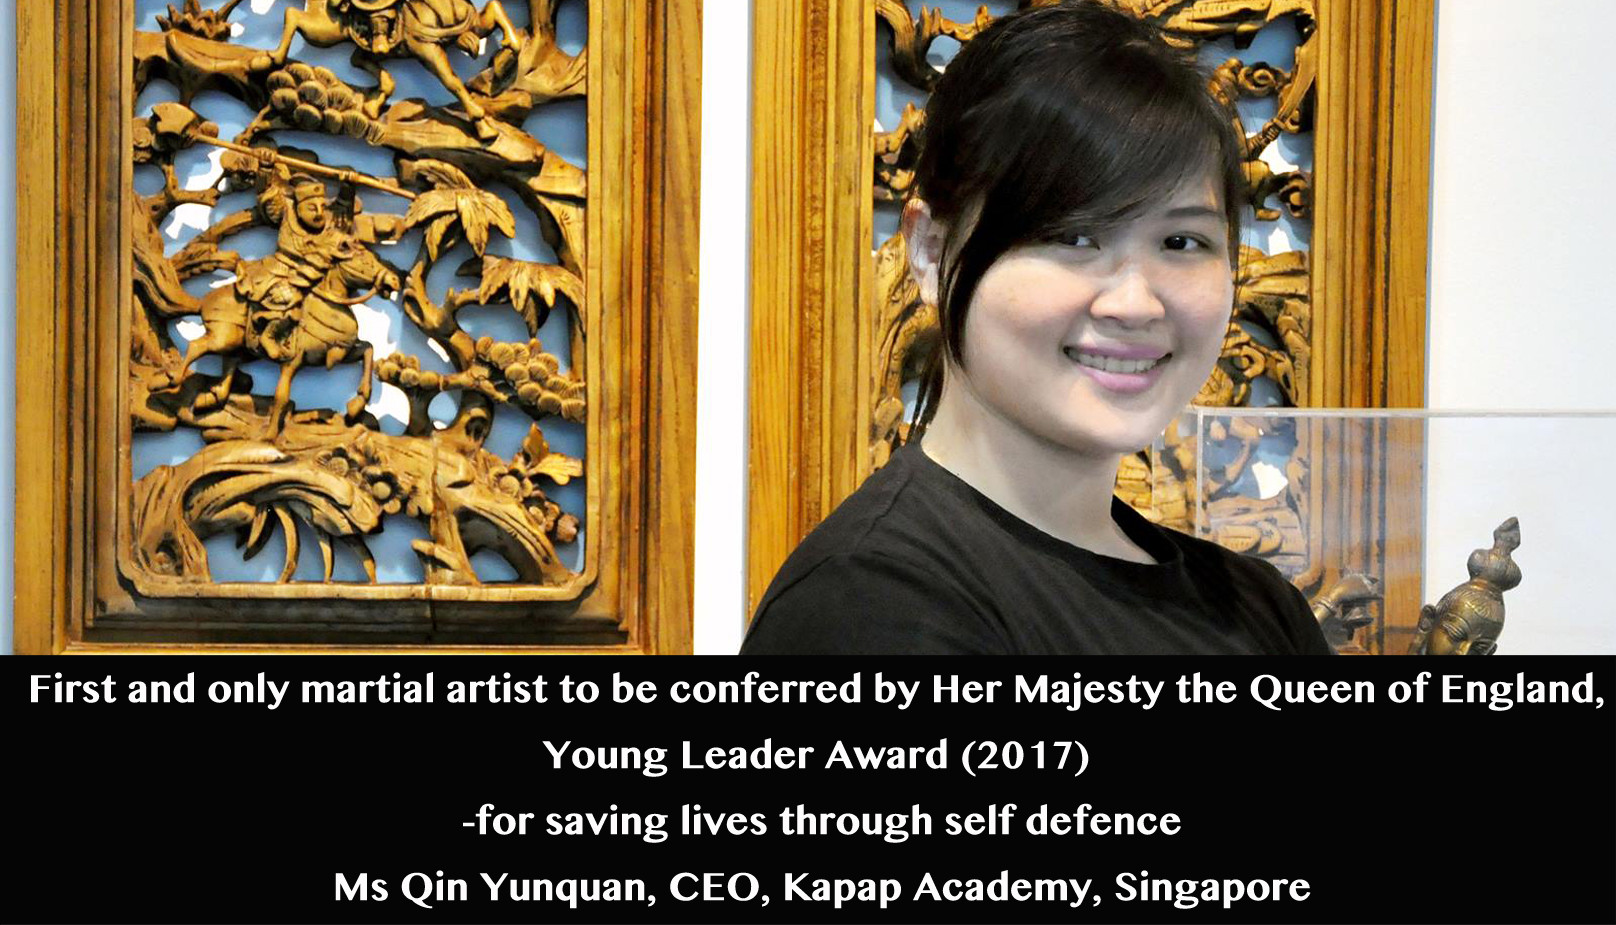 Yunquan on Queens Young Leader Award